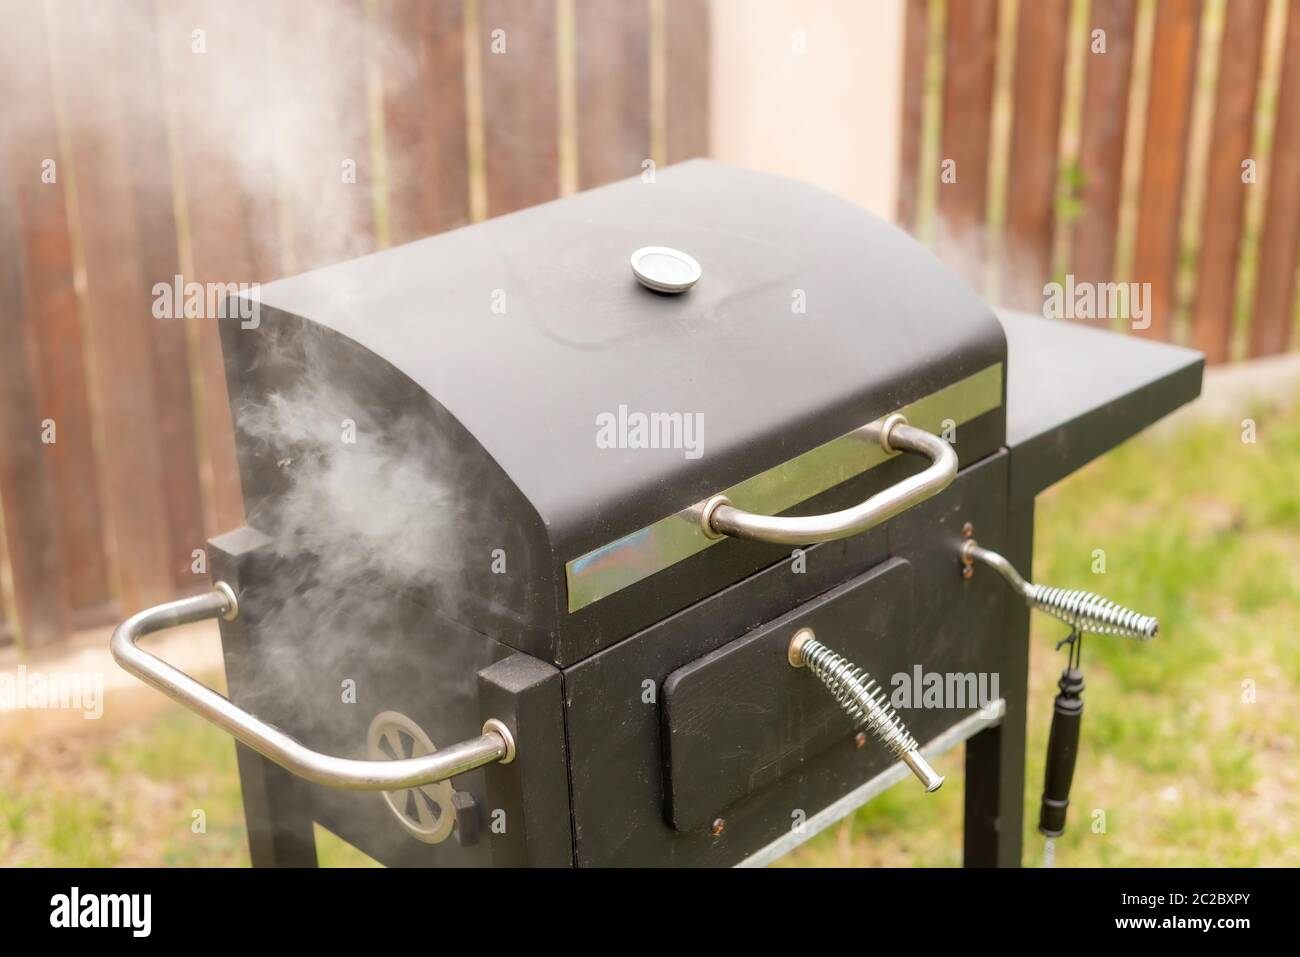 High angle of modern grill emitting smoke near fence during barbecue on summer day in garden Stock Photo